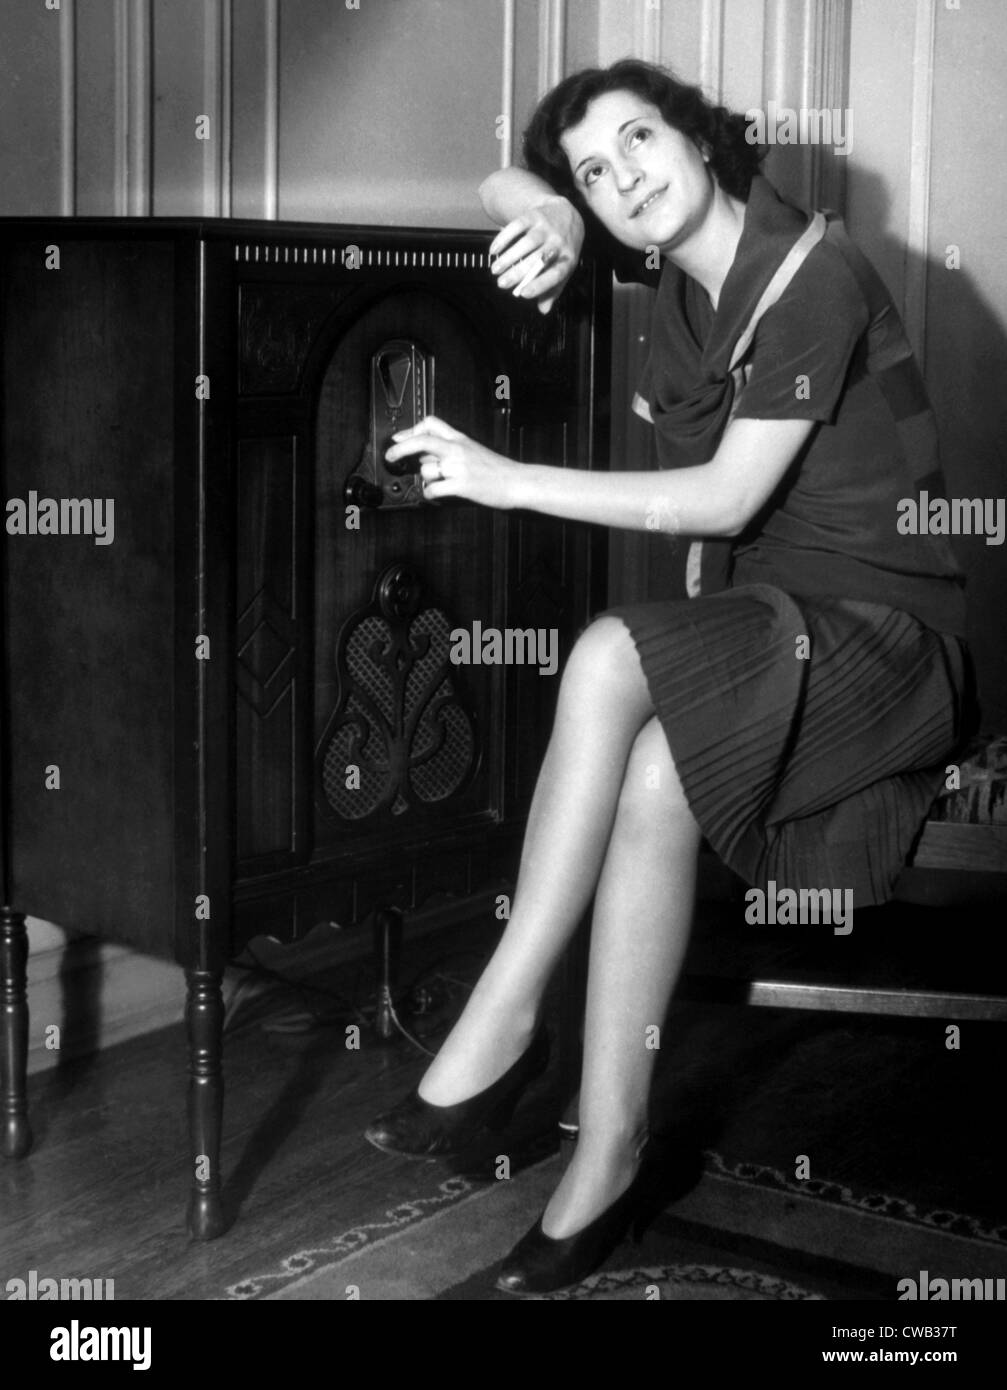 Woman listening to a radio, c. 1930s. - Stock Image